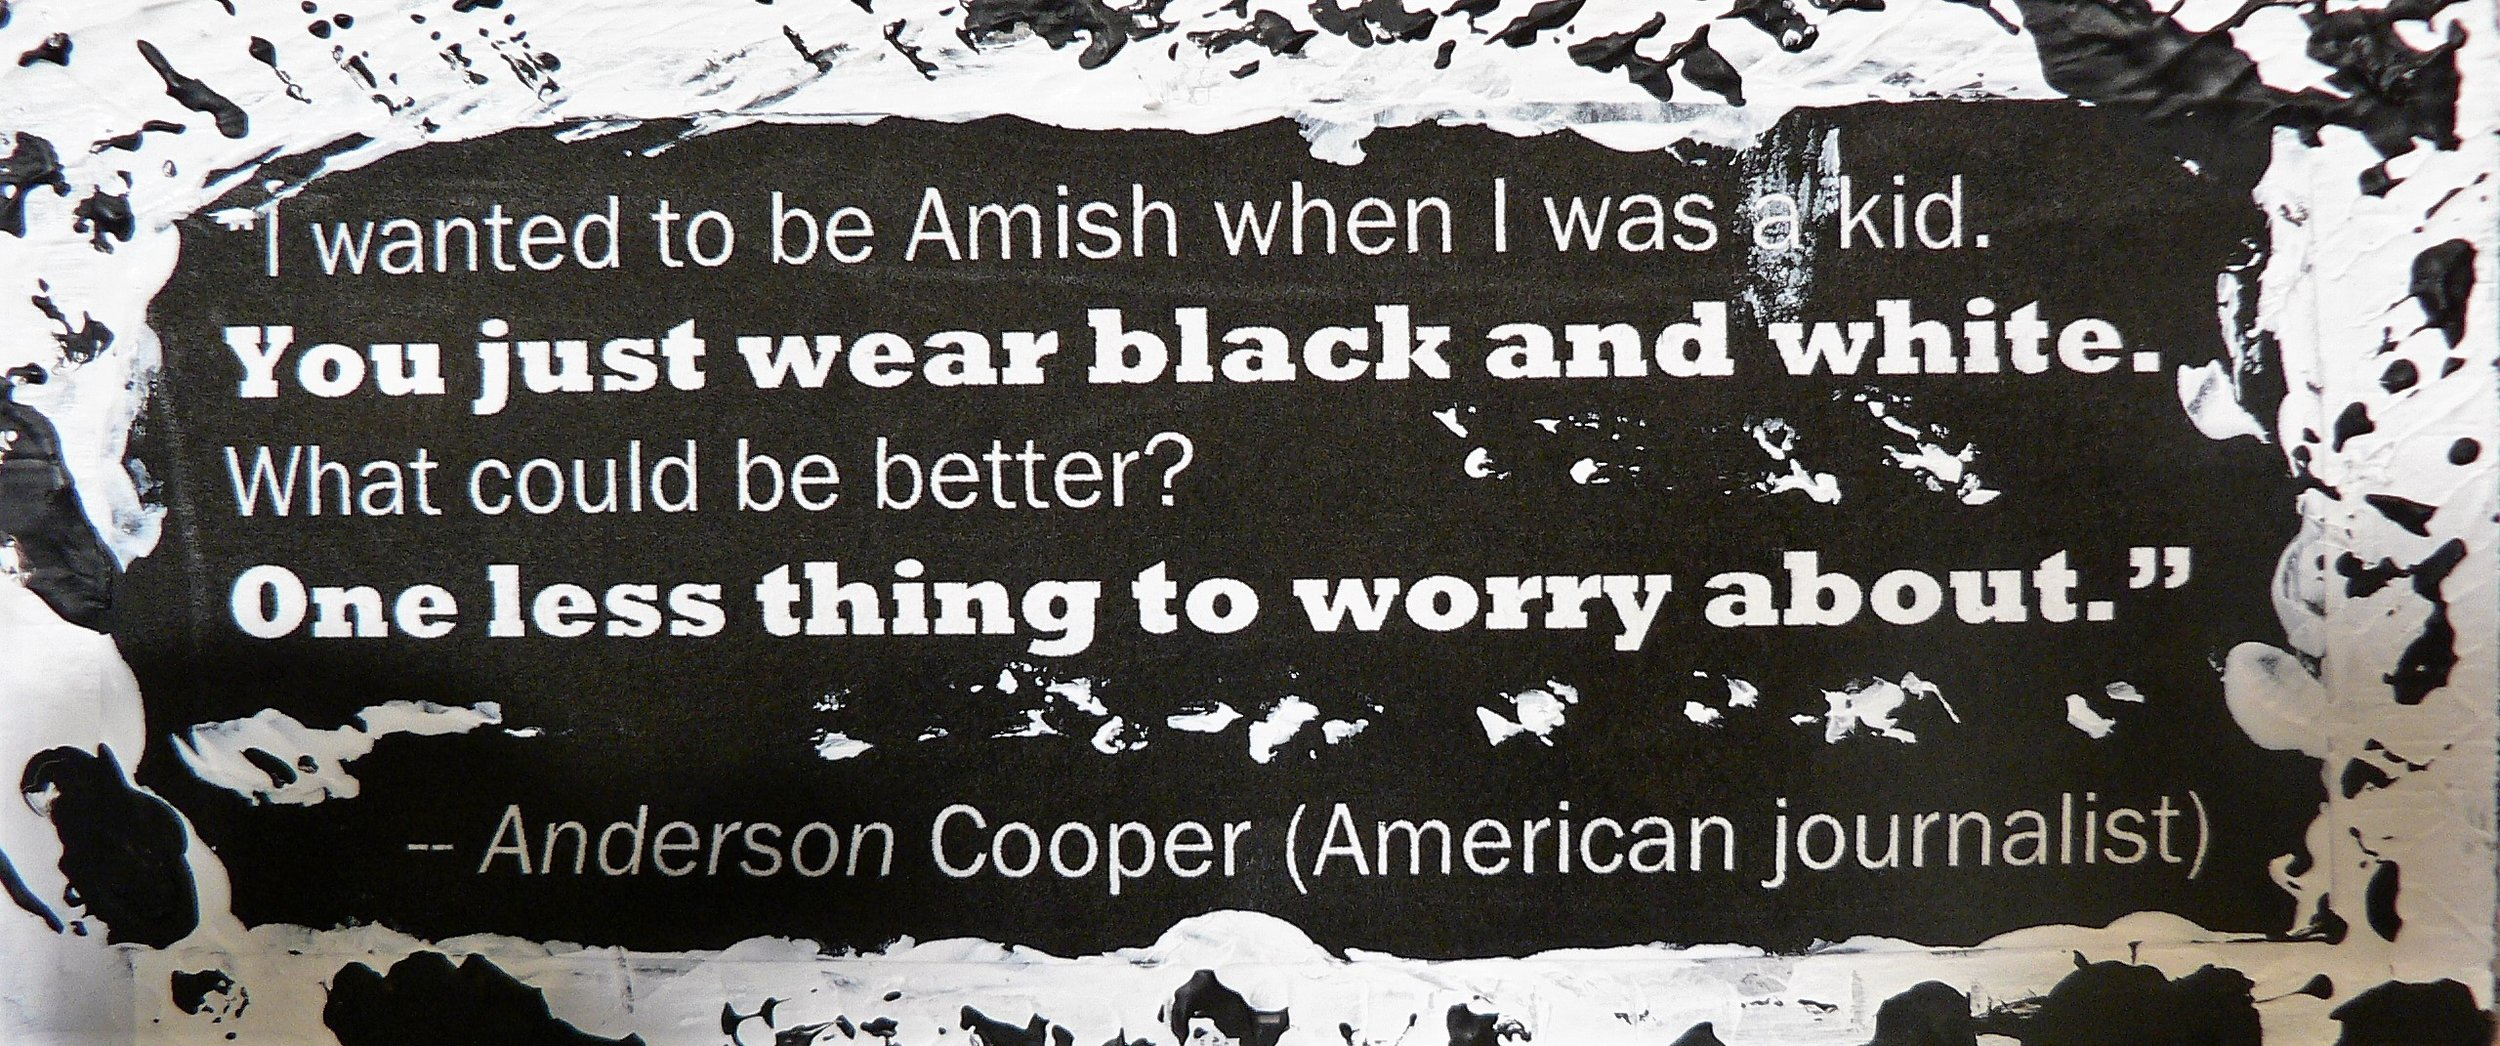 Black and White Together Quote.JPG